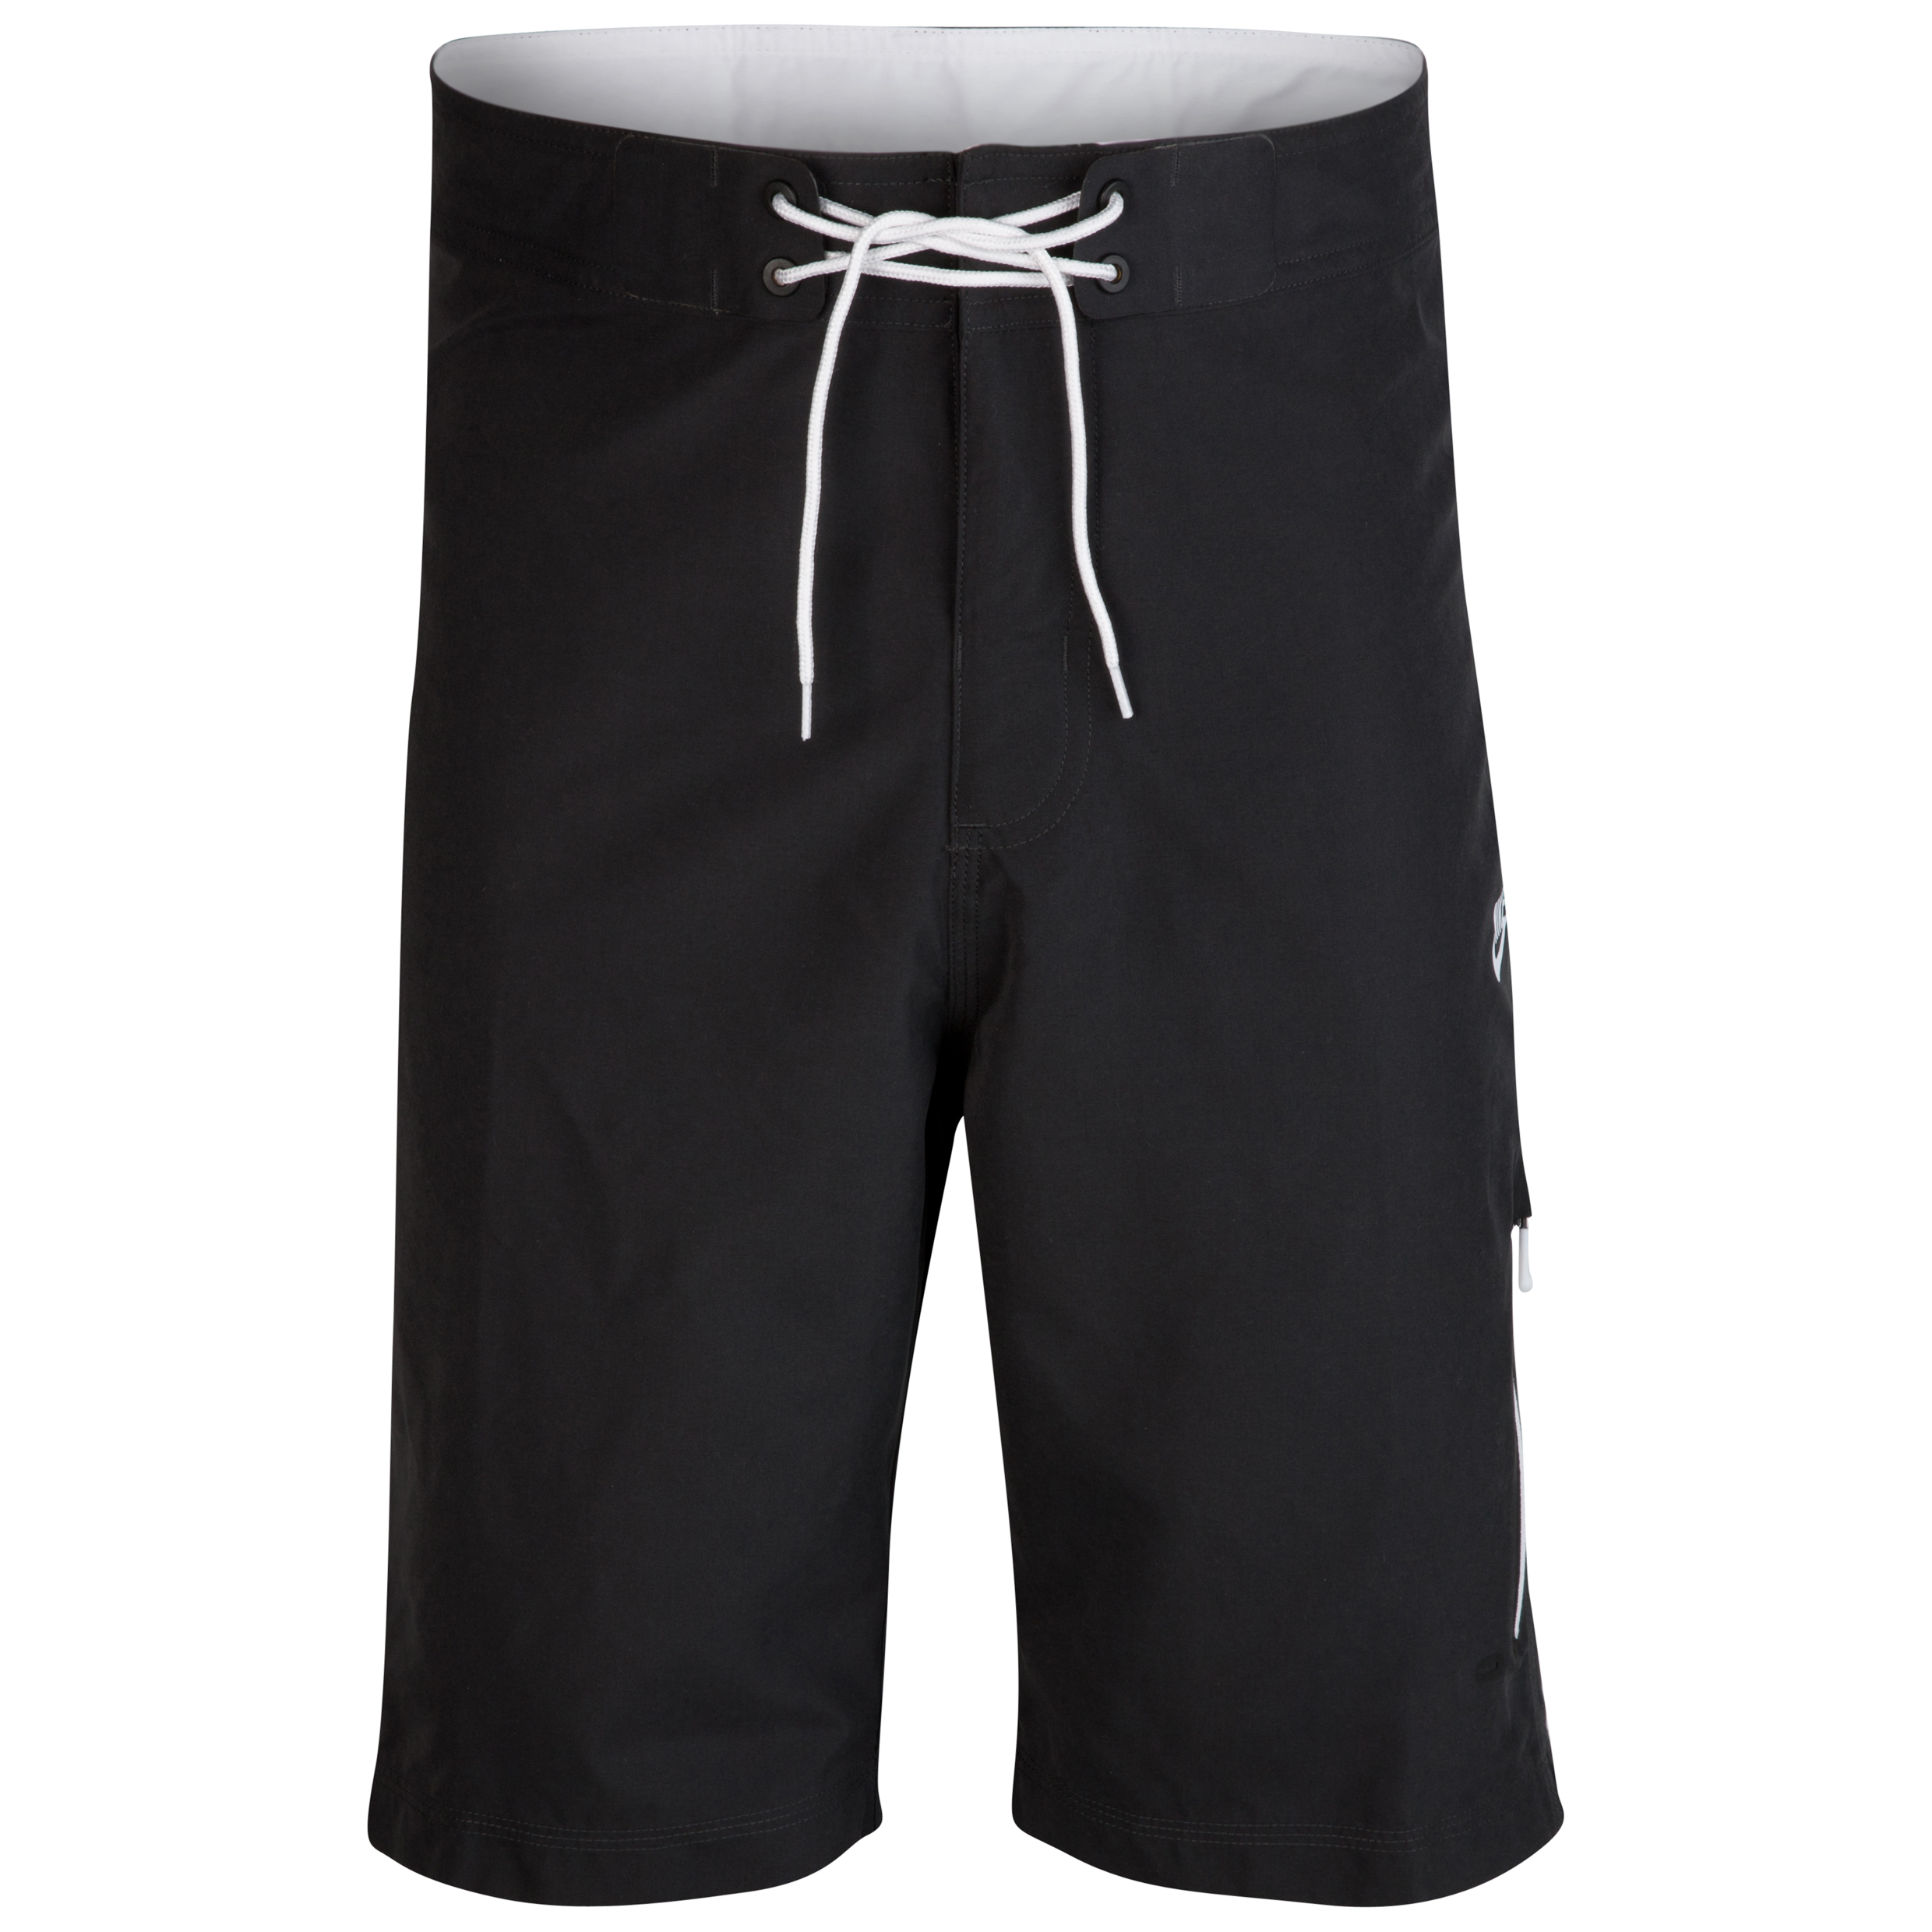 Nike The Prodigy Boardshort - Black/White/White